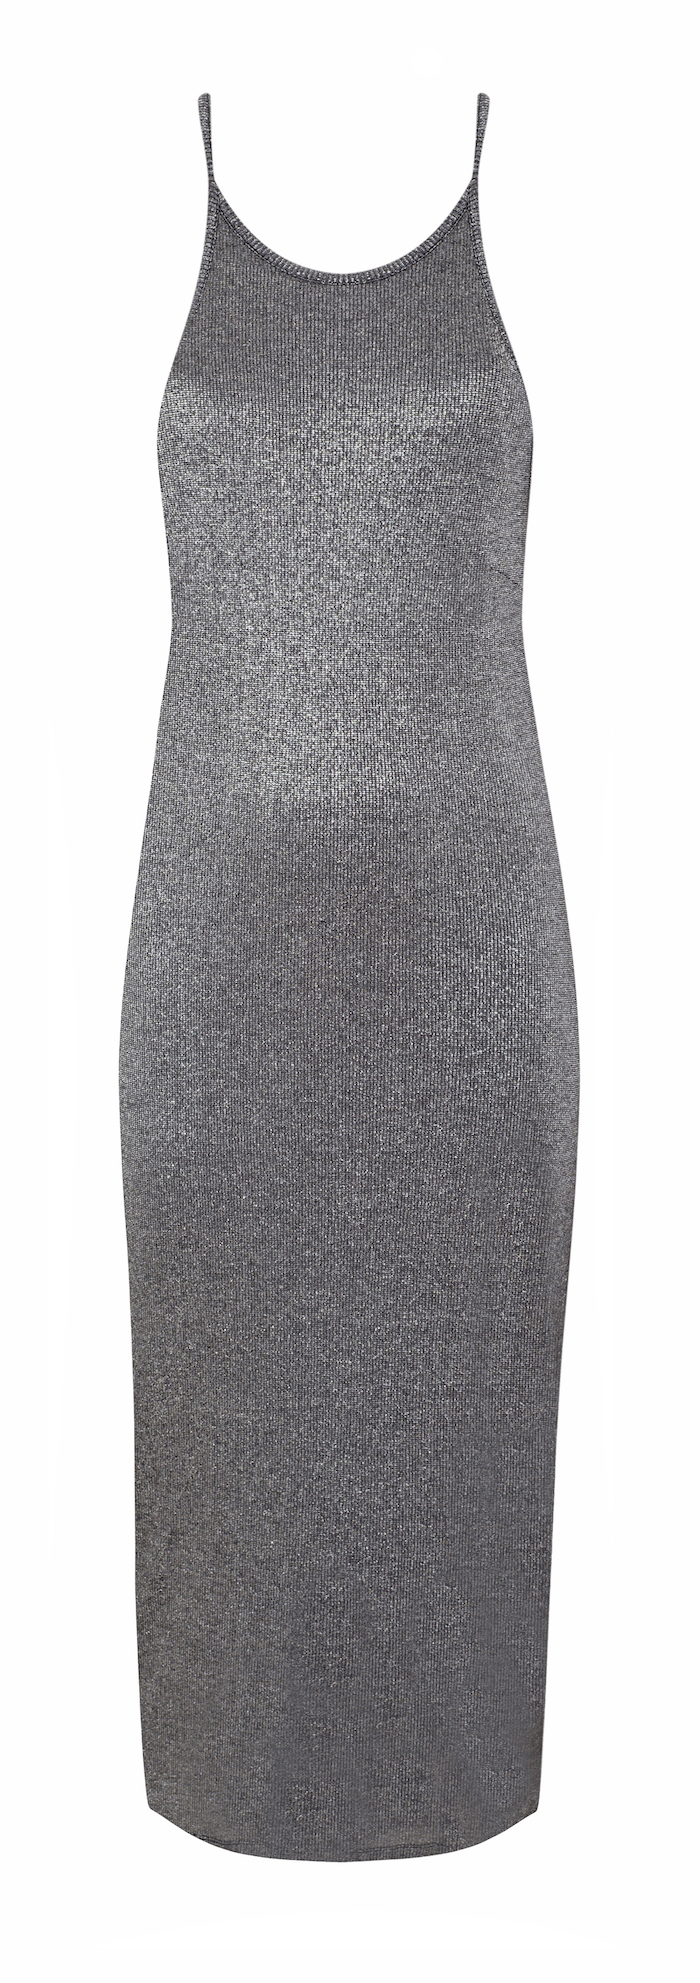 Topshop Archive Collection-12